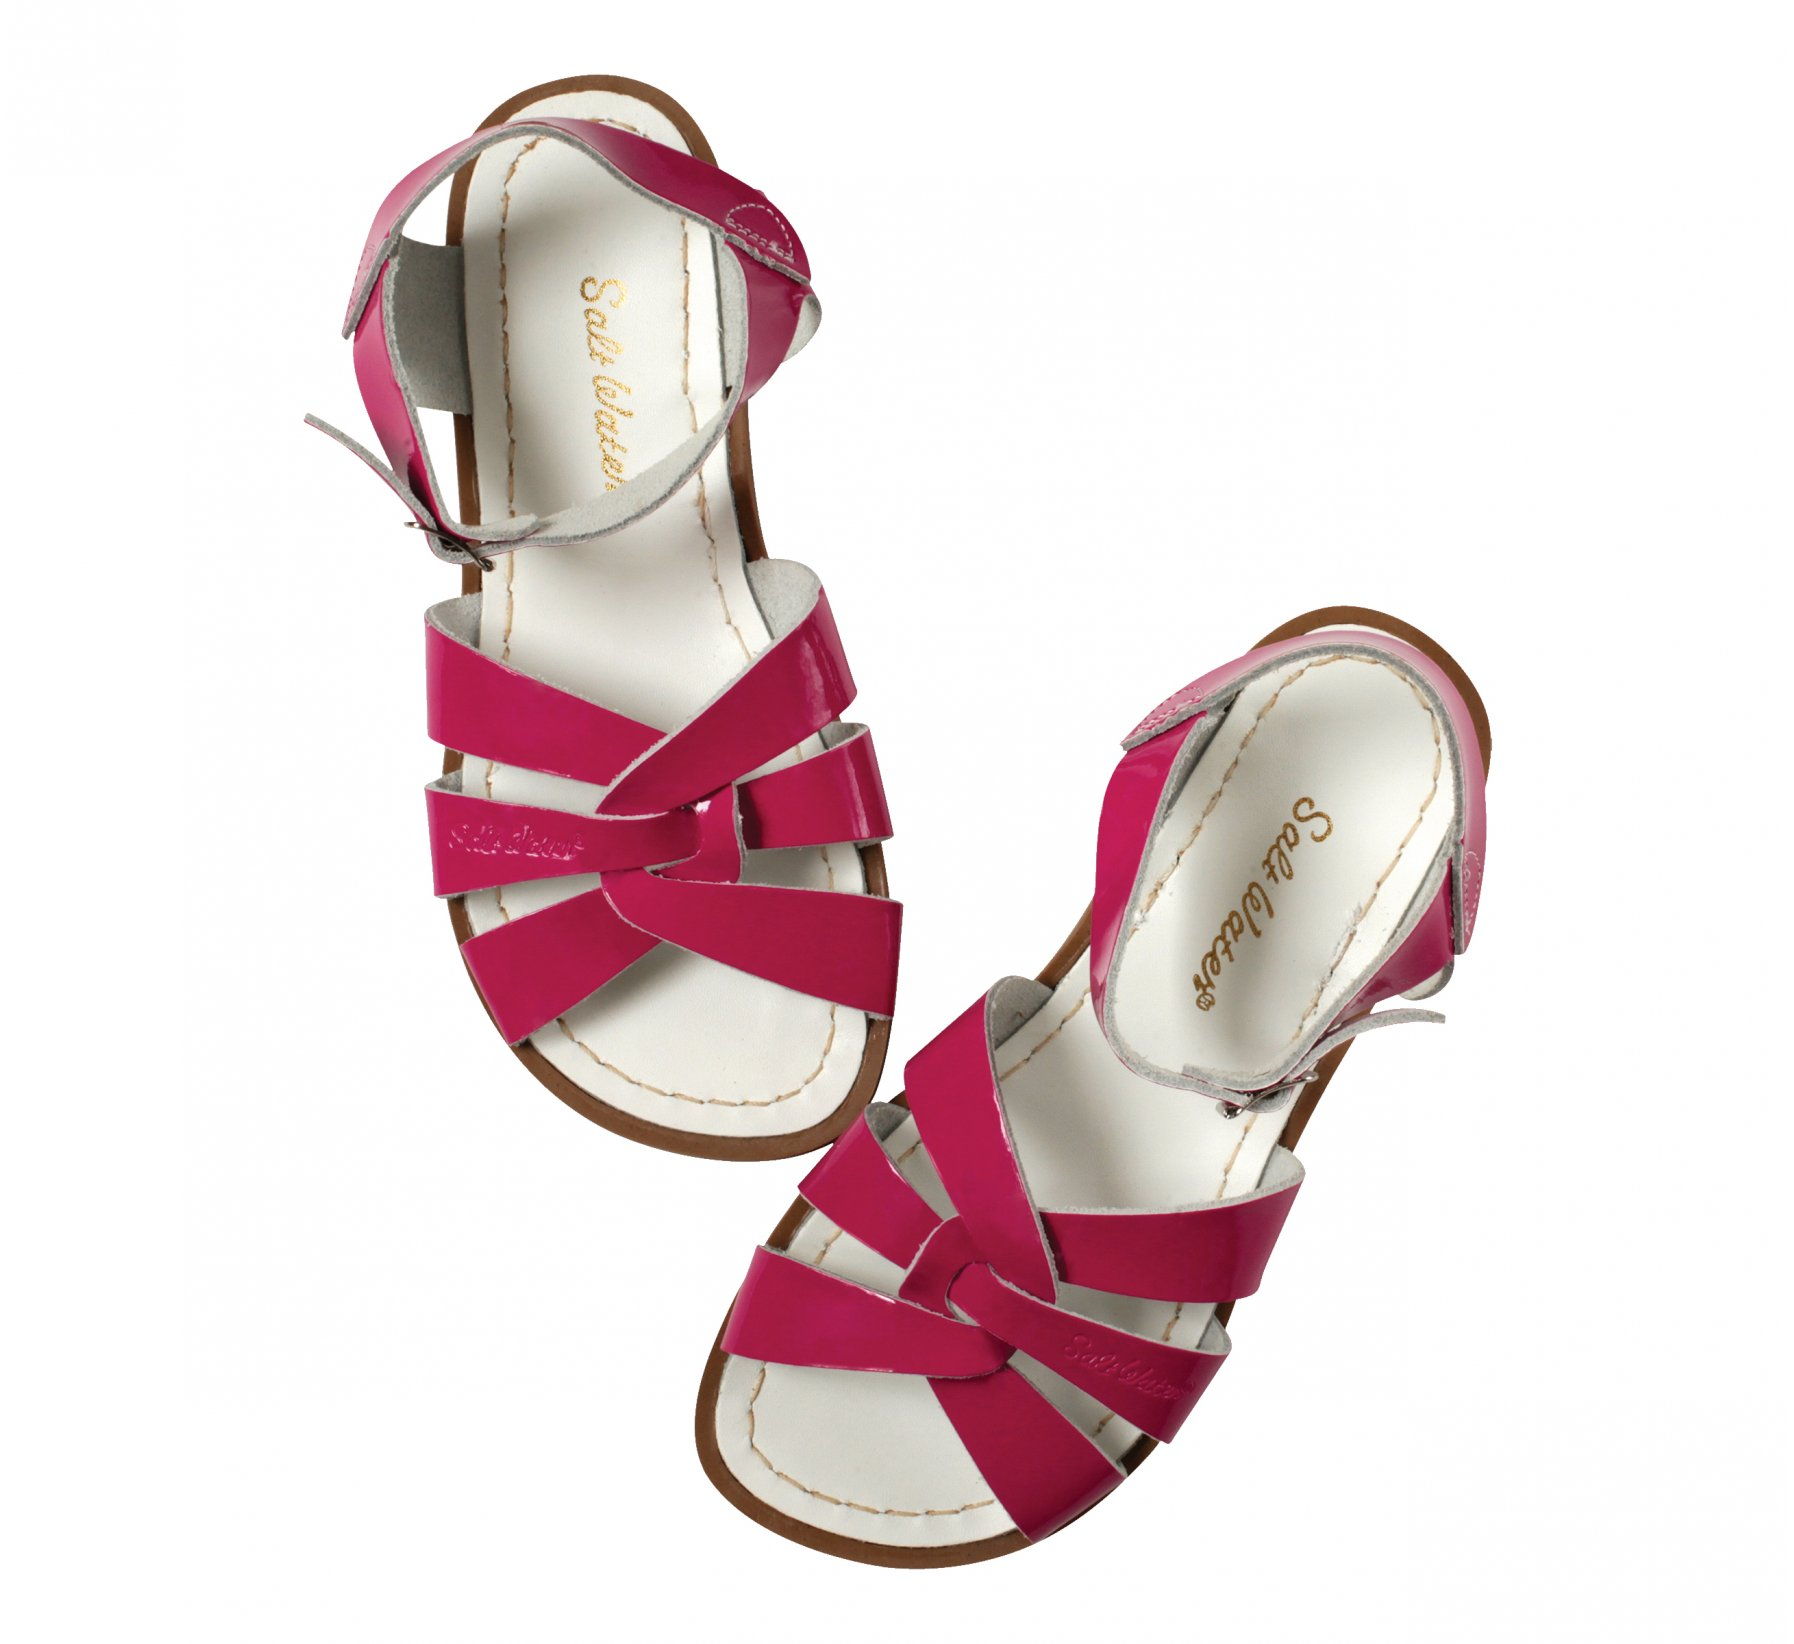 Original Shiny Fuchsia - Salt Water Sandals